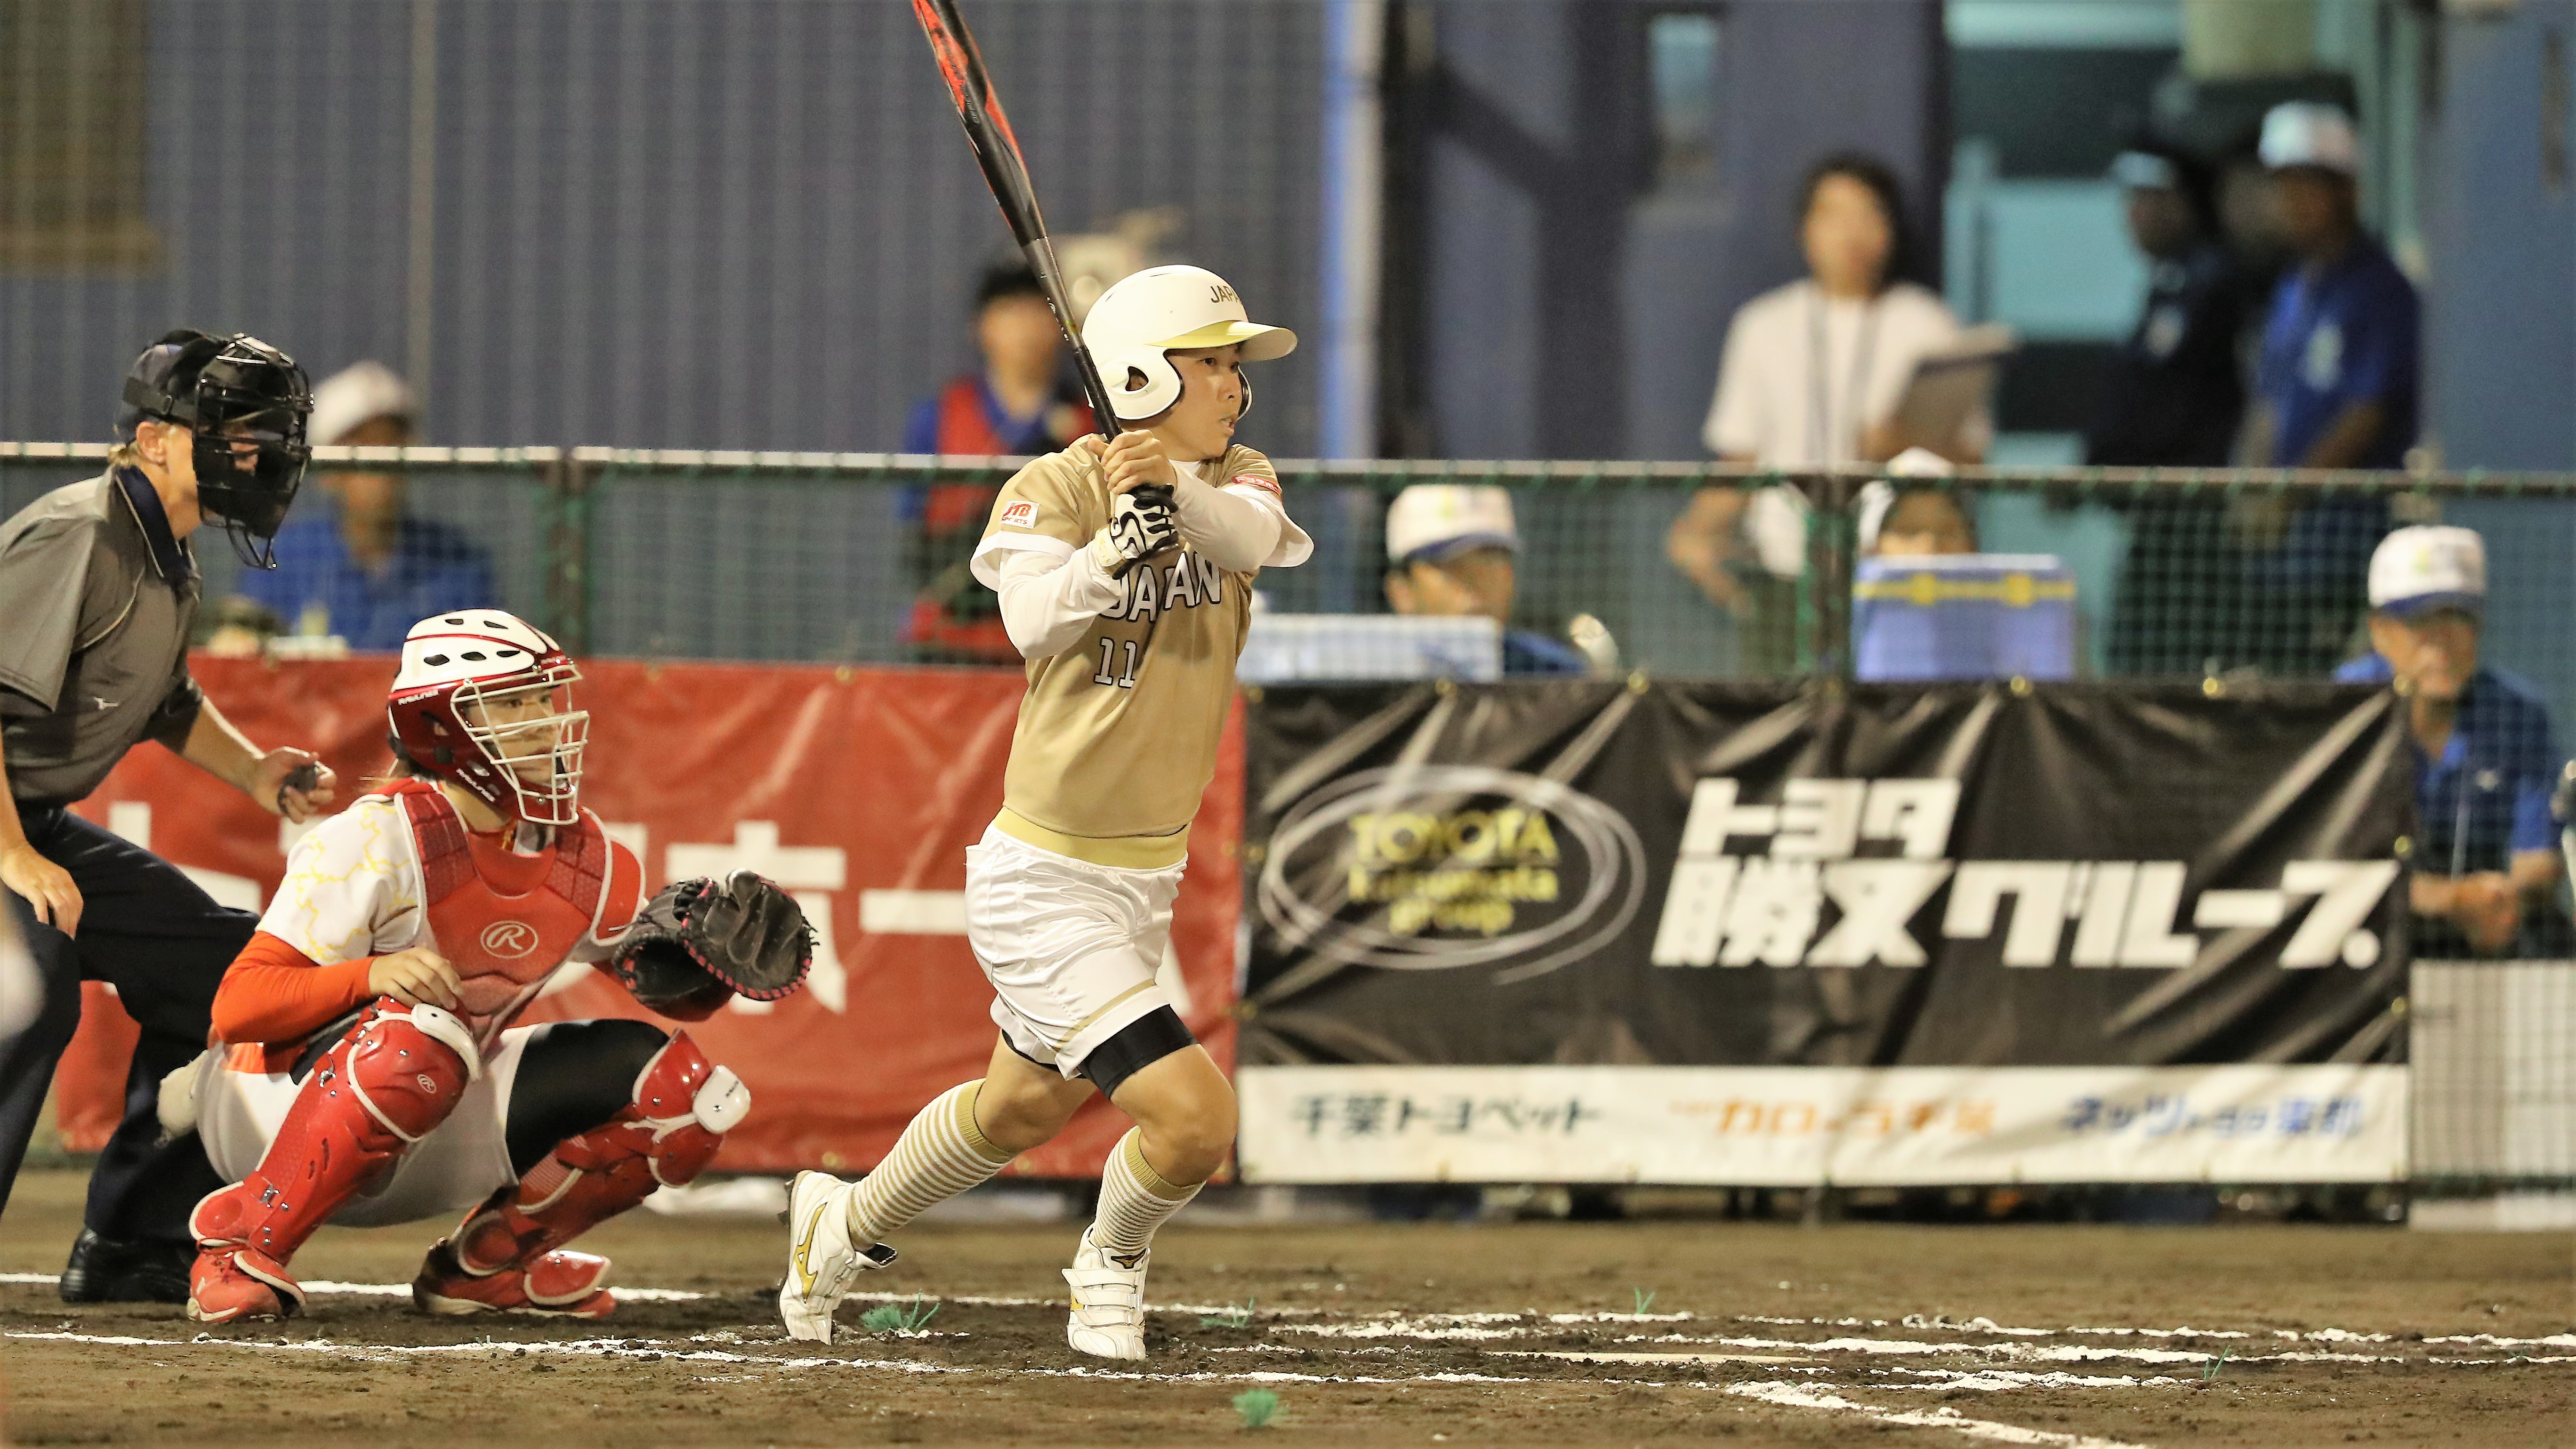 Eri Yamada hit a double and a home run in her first 2 at bats